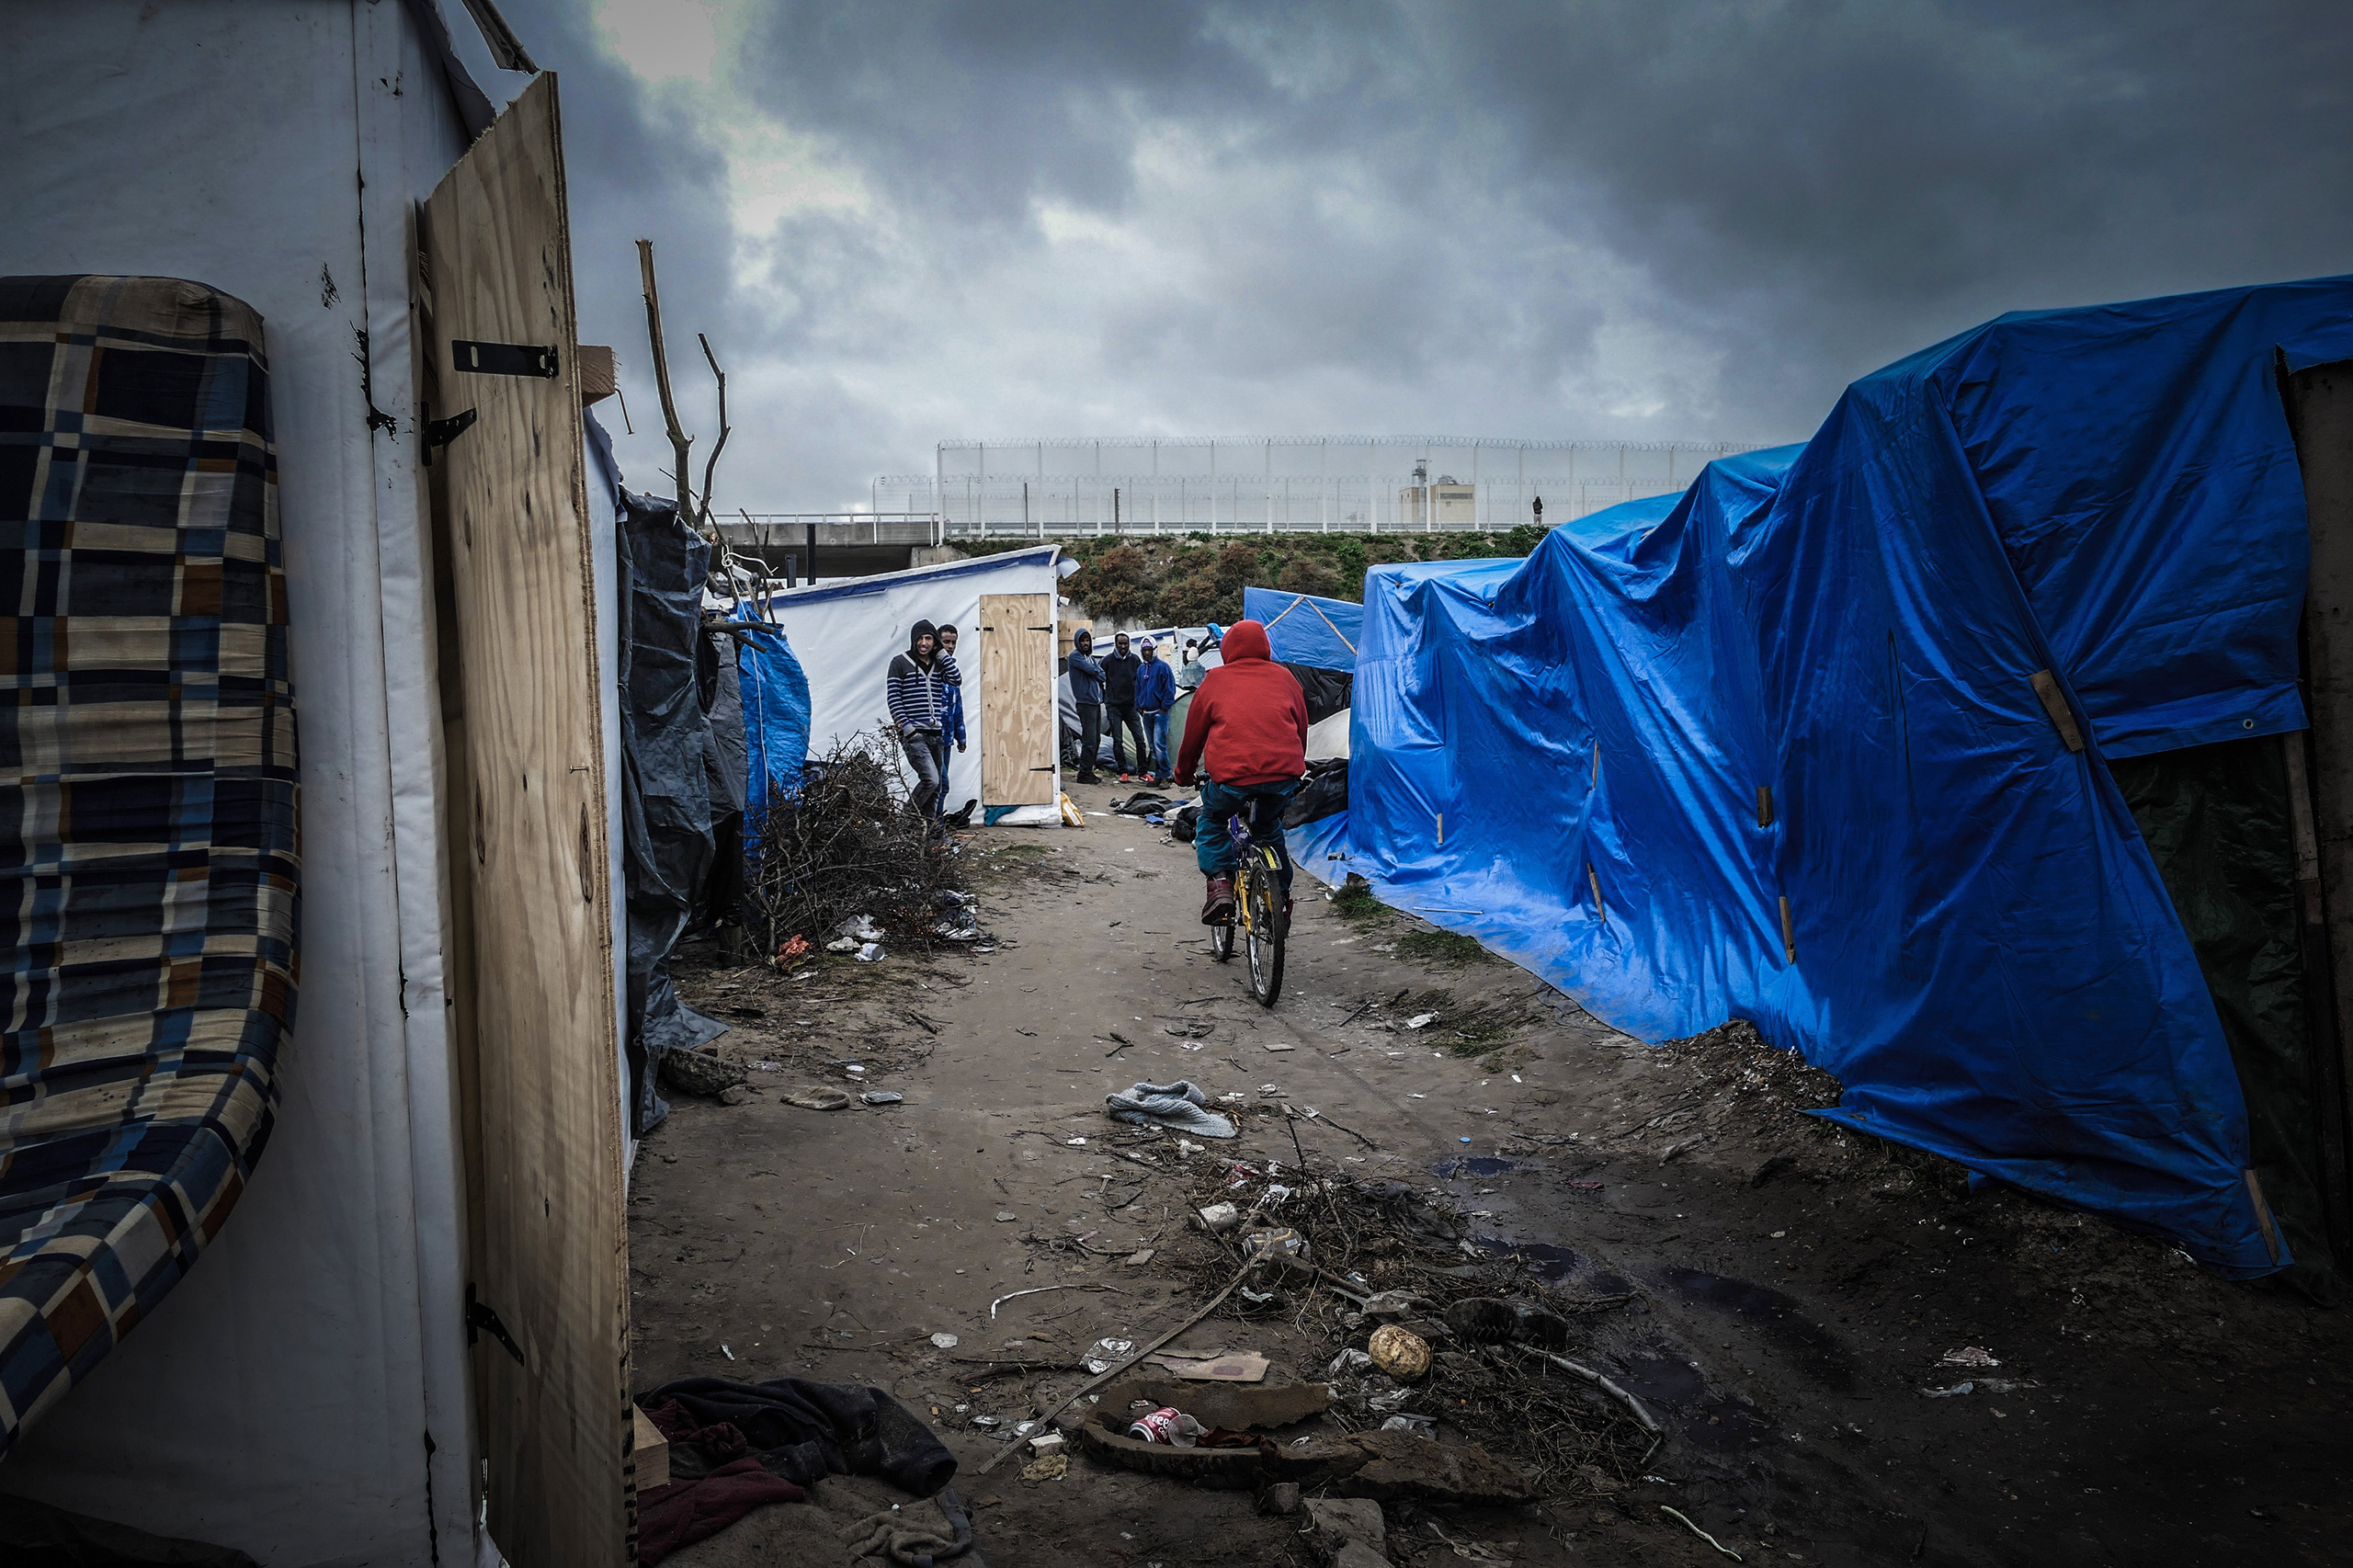 Some 6,000 migrants and refugees have sought shelter in the Jungle, an unofficial camp in the French port city of Calais.